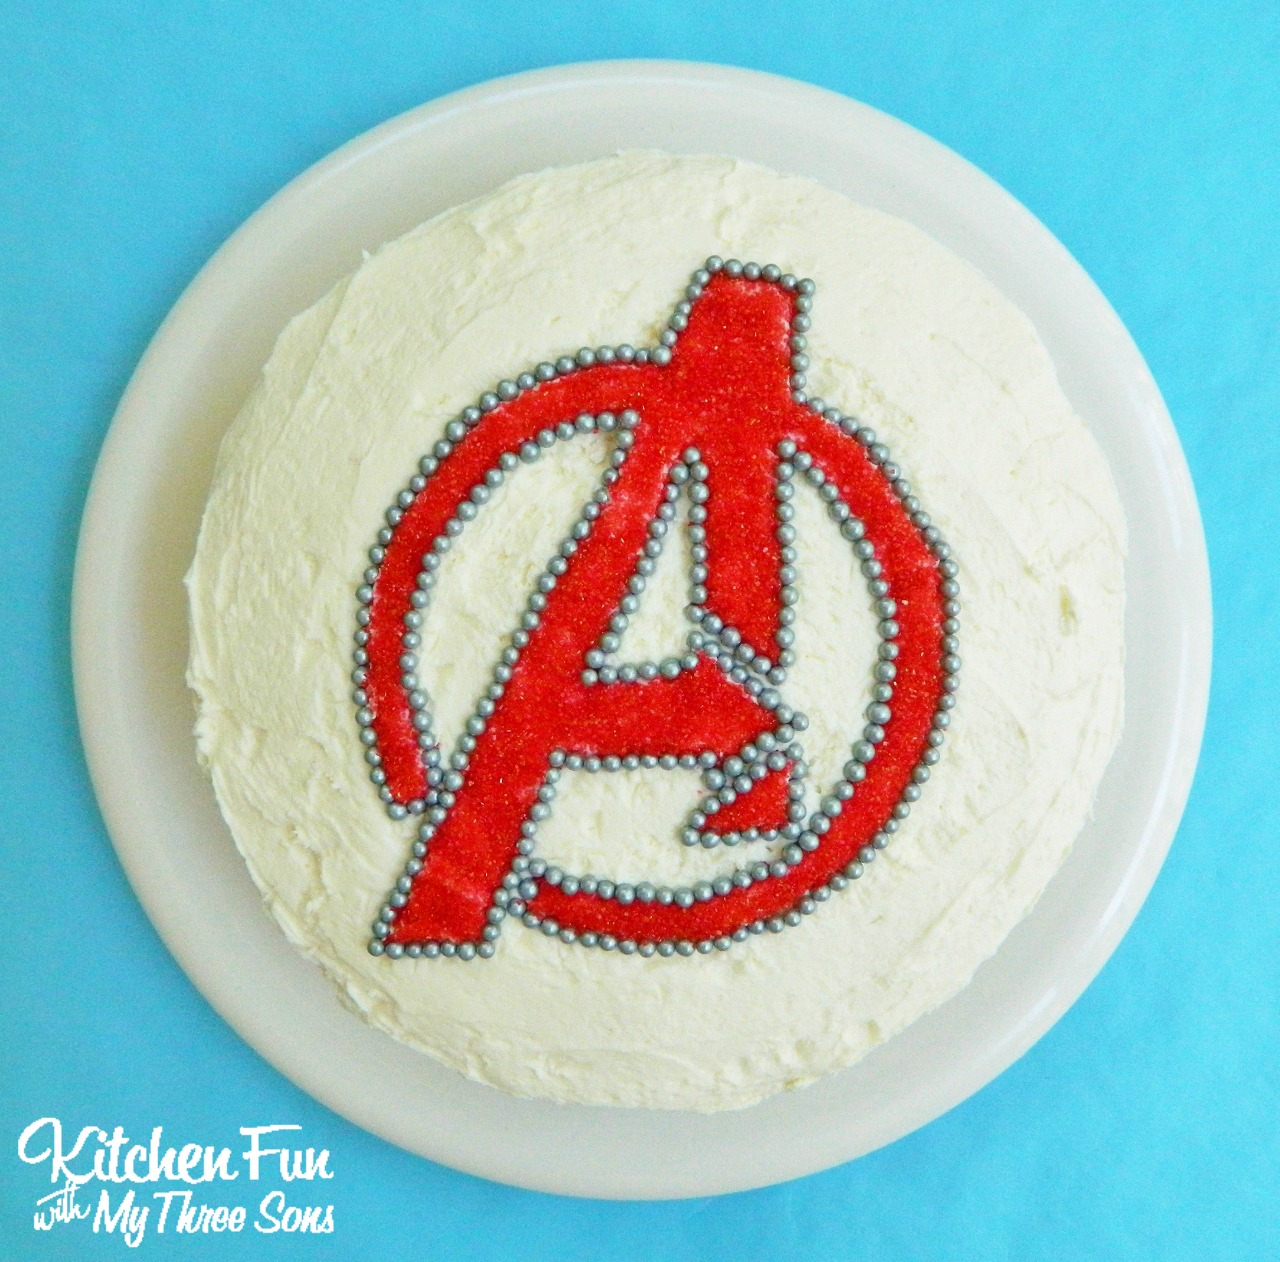 Marvelous The Avengers Party Fun Food Ideas Funny Birthday Cards Online Alyptdamsfinfo